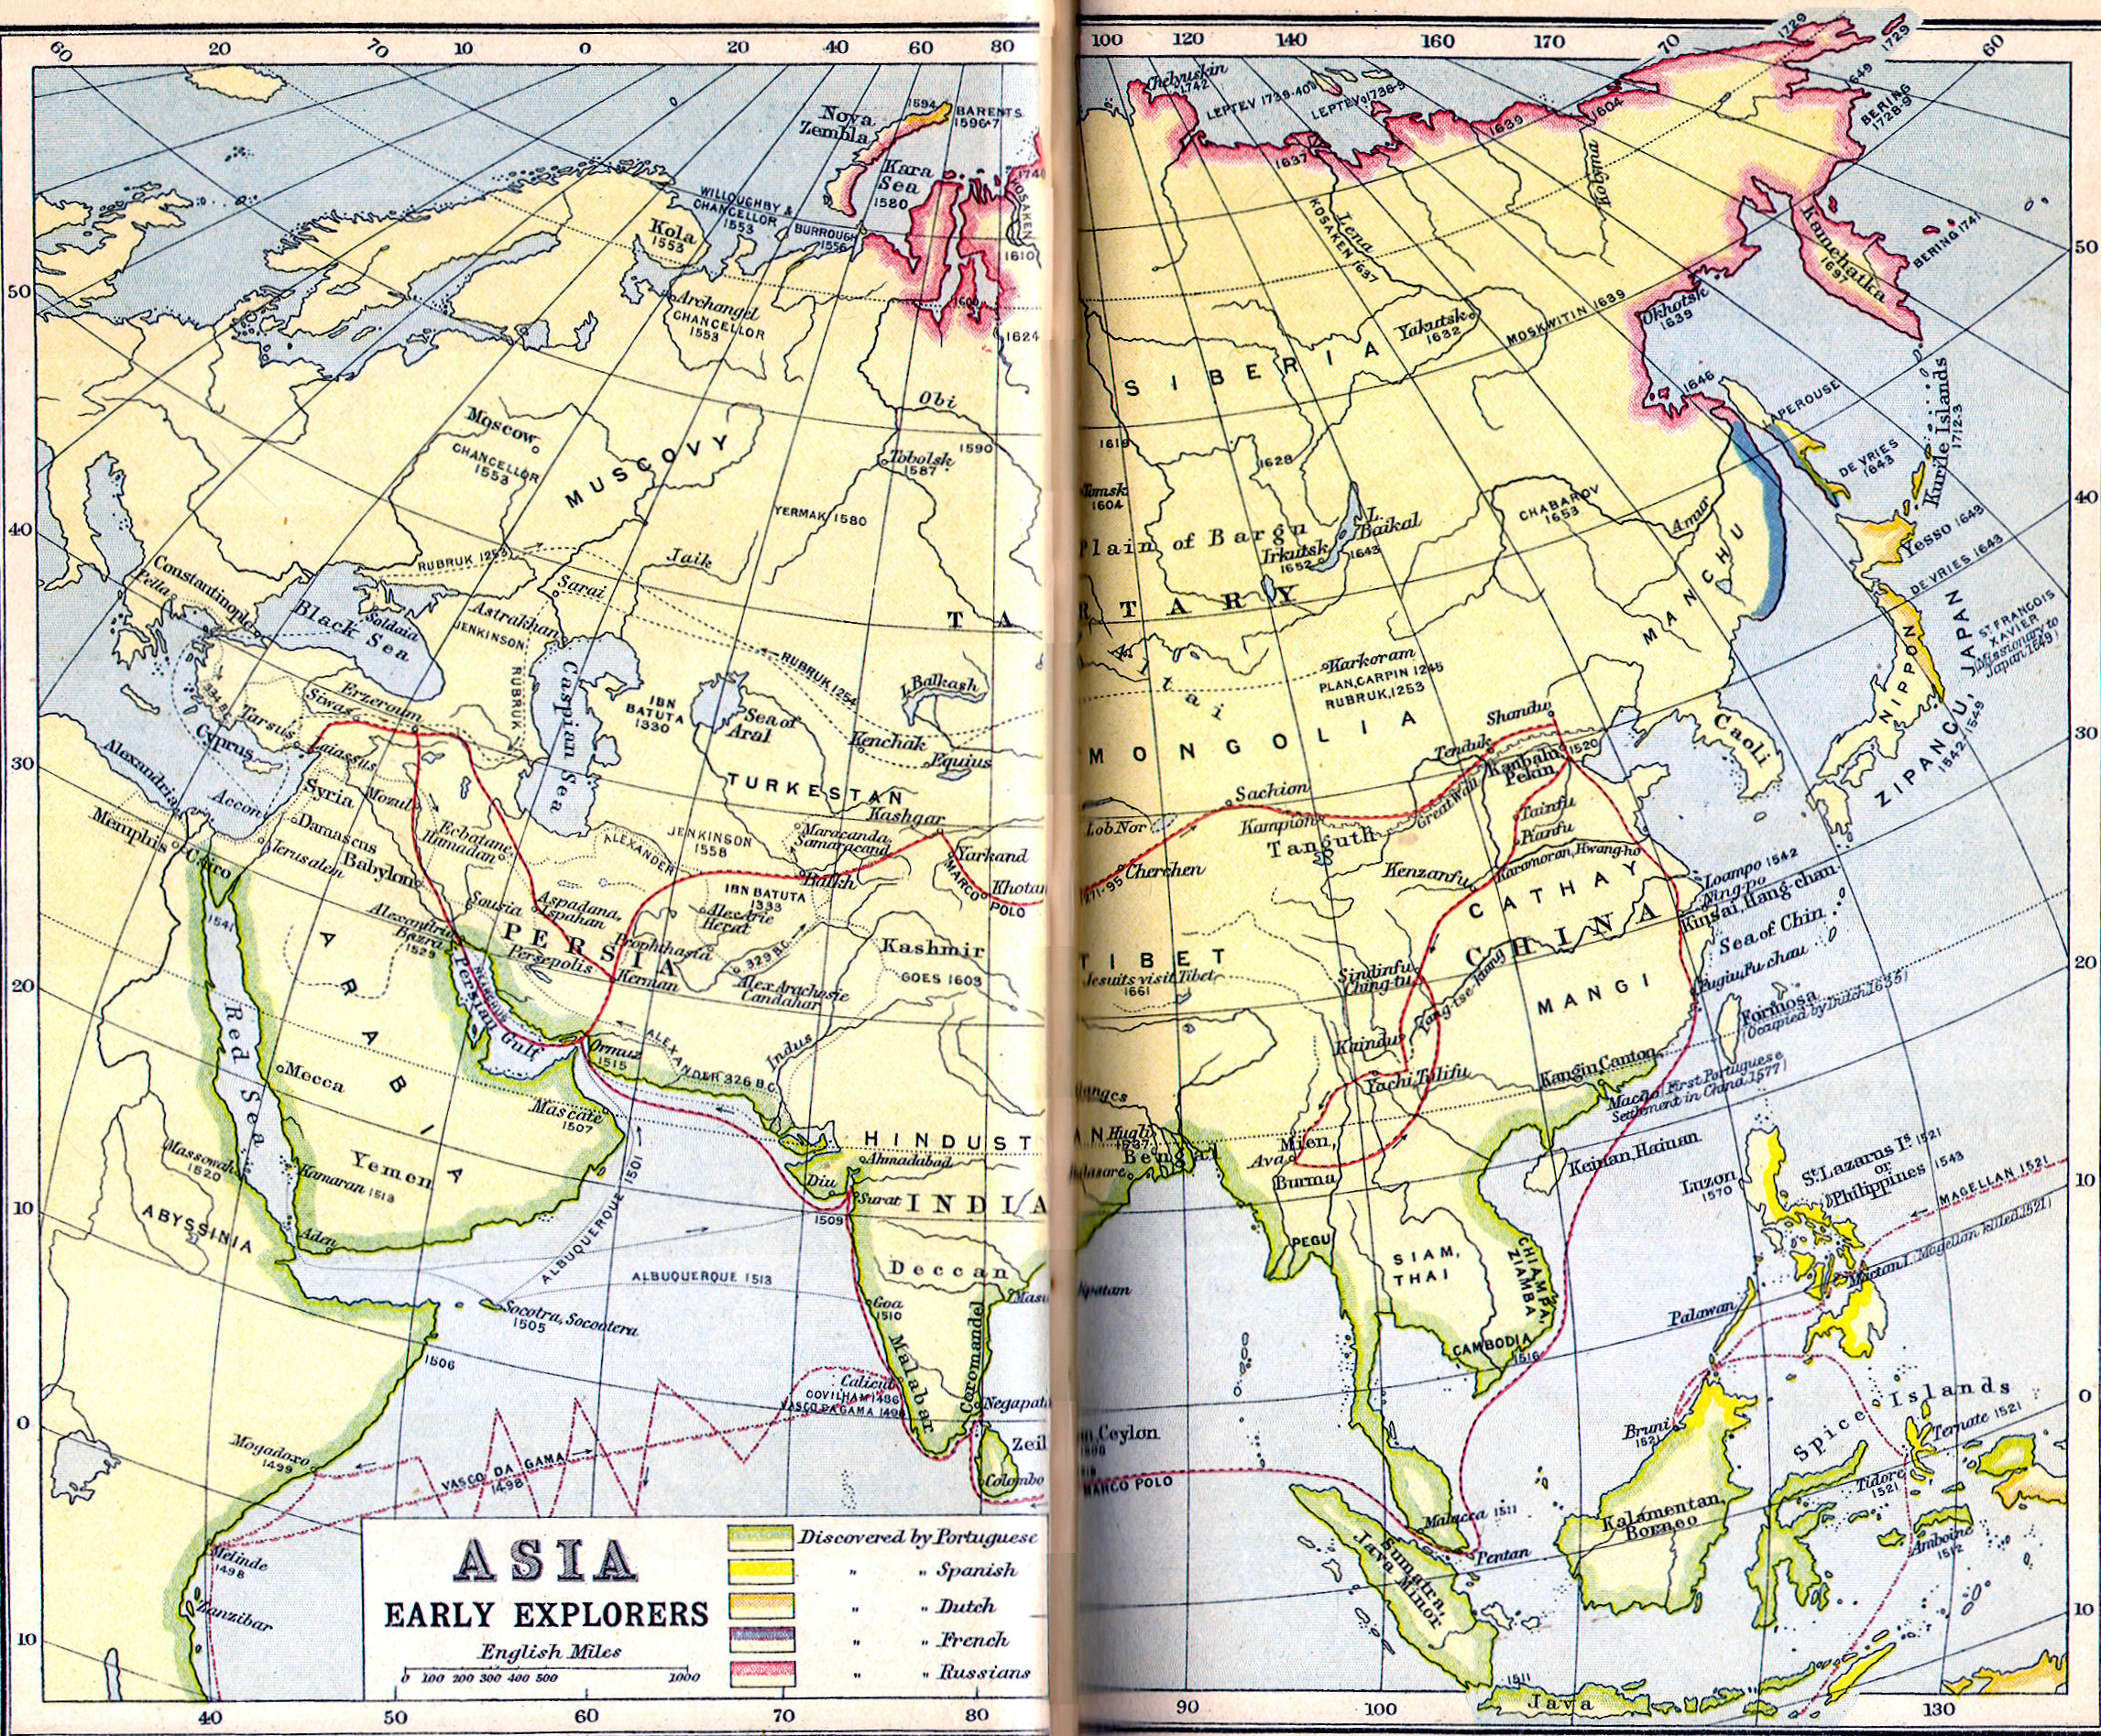 http://www.heritage-history.com/maps/lhasia/asia015.jpg